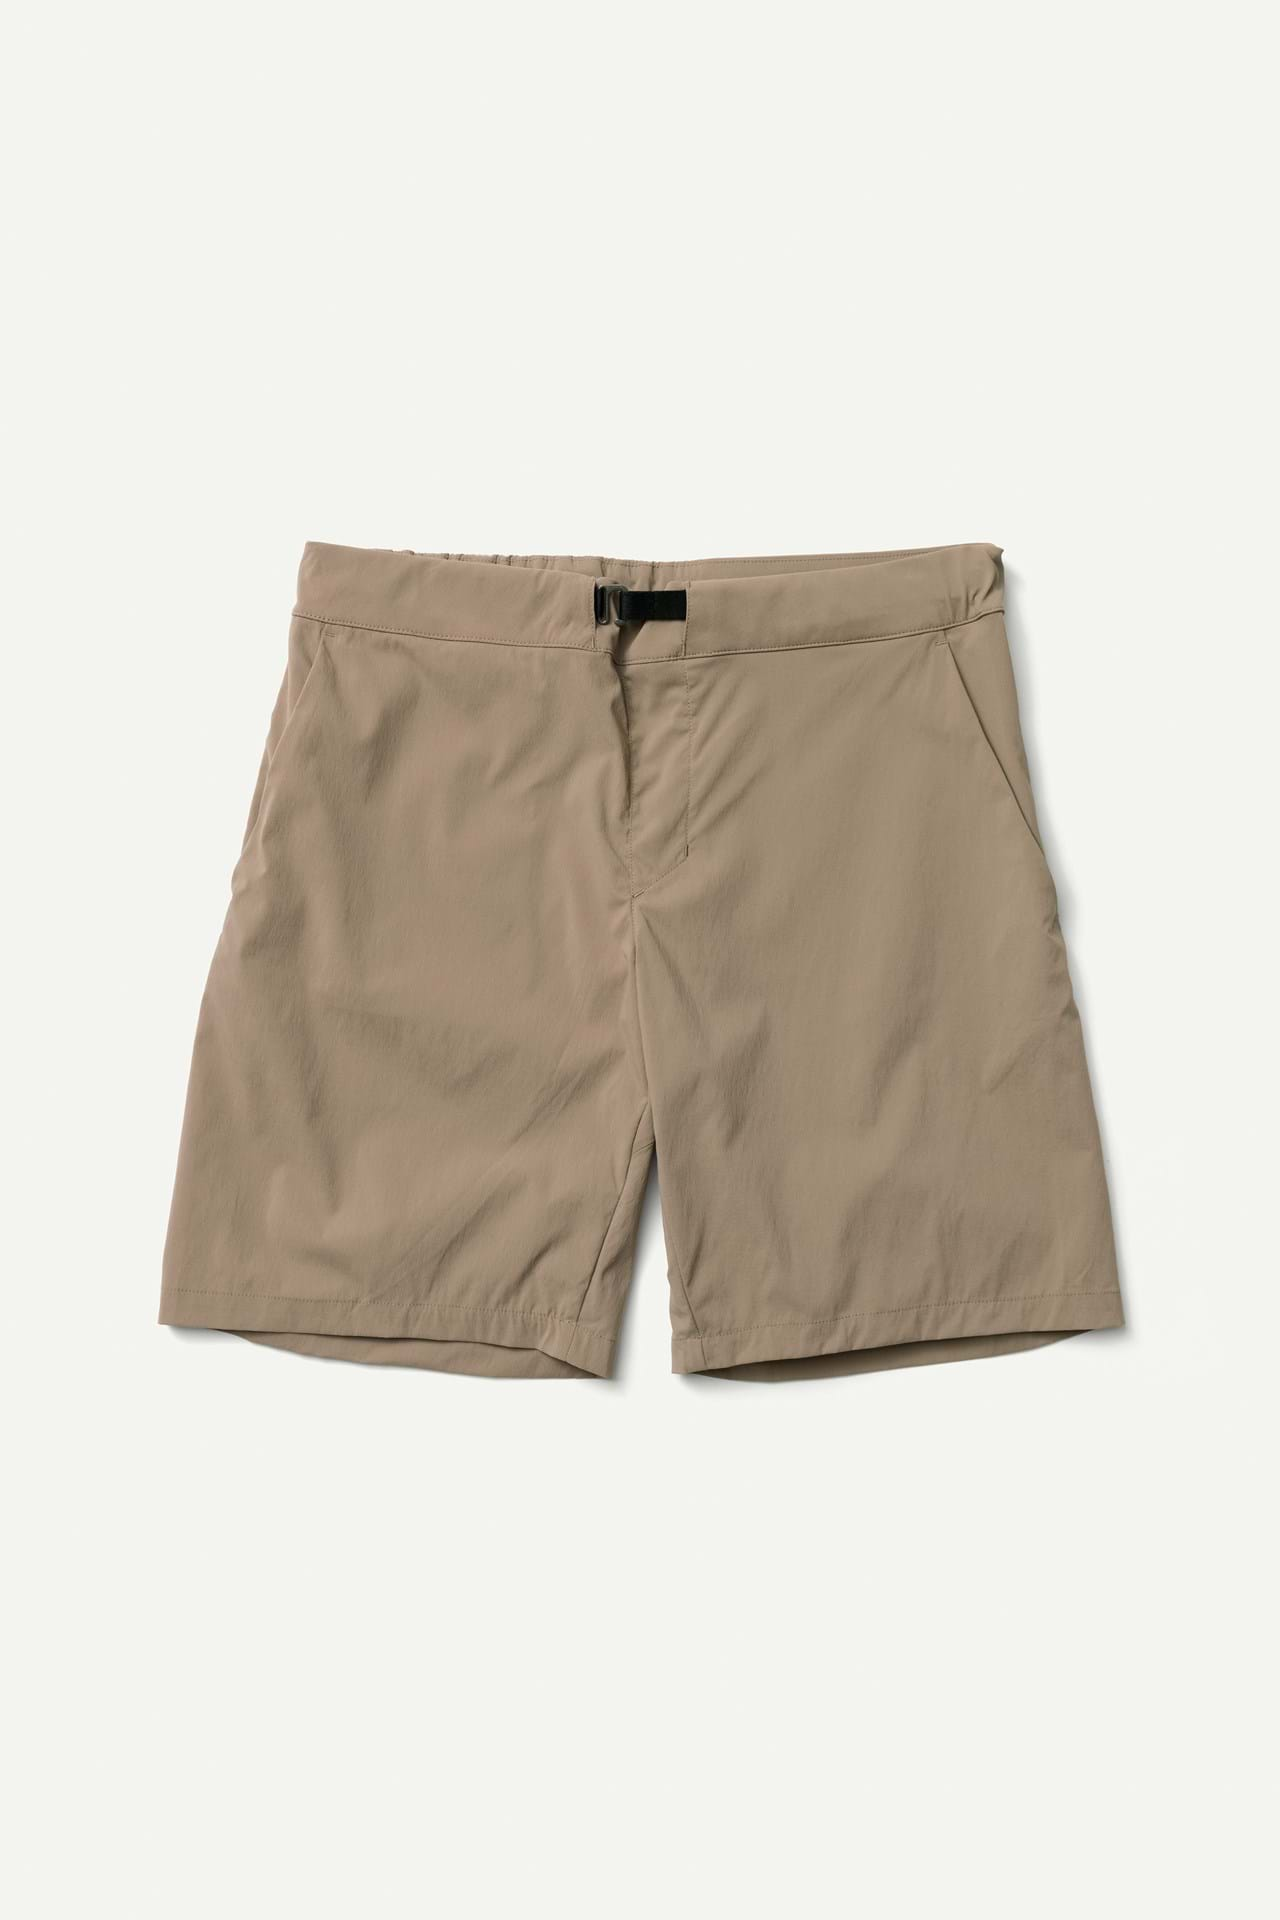 Wadi Shorts - Woman